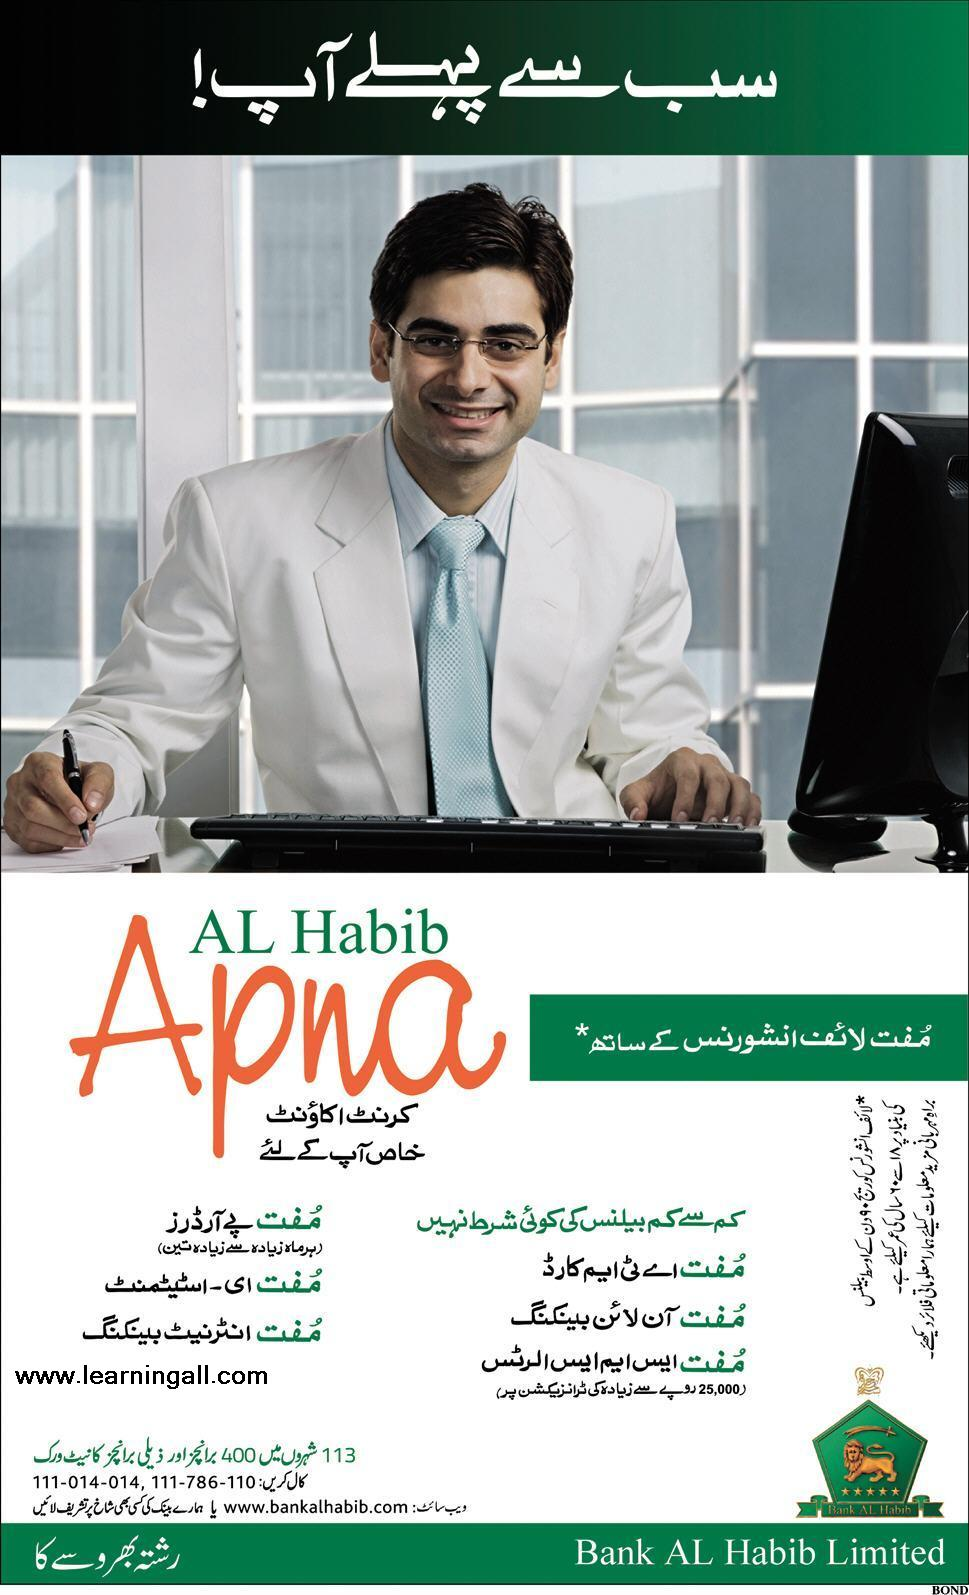 Al Habib Bank Apna Current Account Details and Benefits